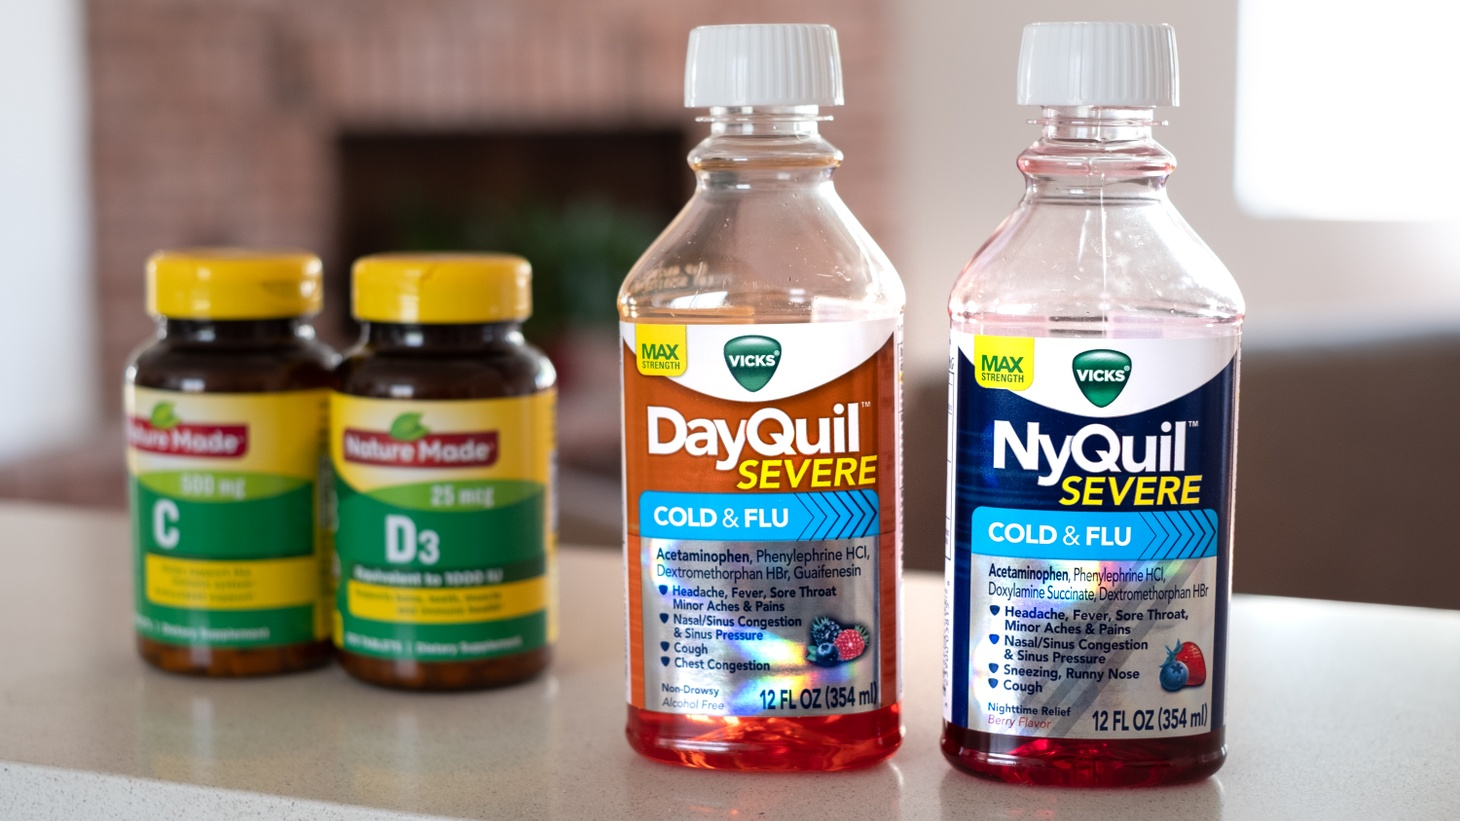 What happens when U.S. residents get sick and must stay home from work? The U.S. is not among the wealthy countries with mandatory sick leave policies, says Dr. Michael Wilkes. Photo of cold/flu medicine and vitamins at home.